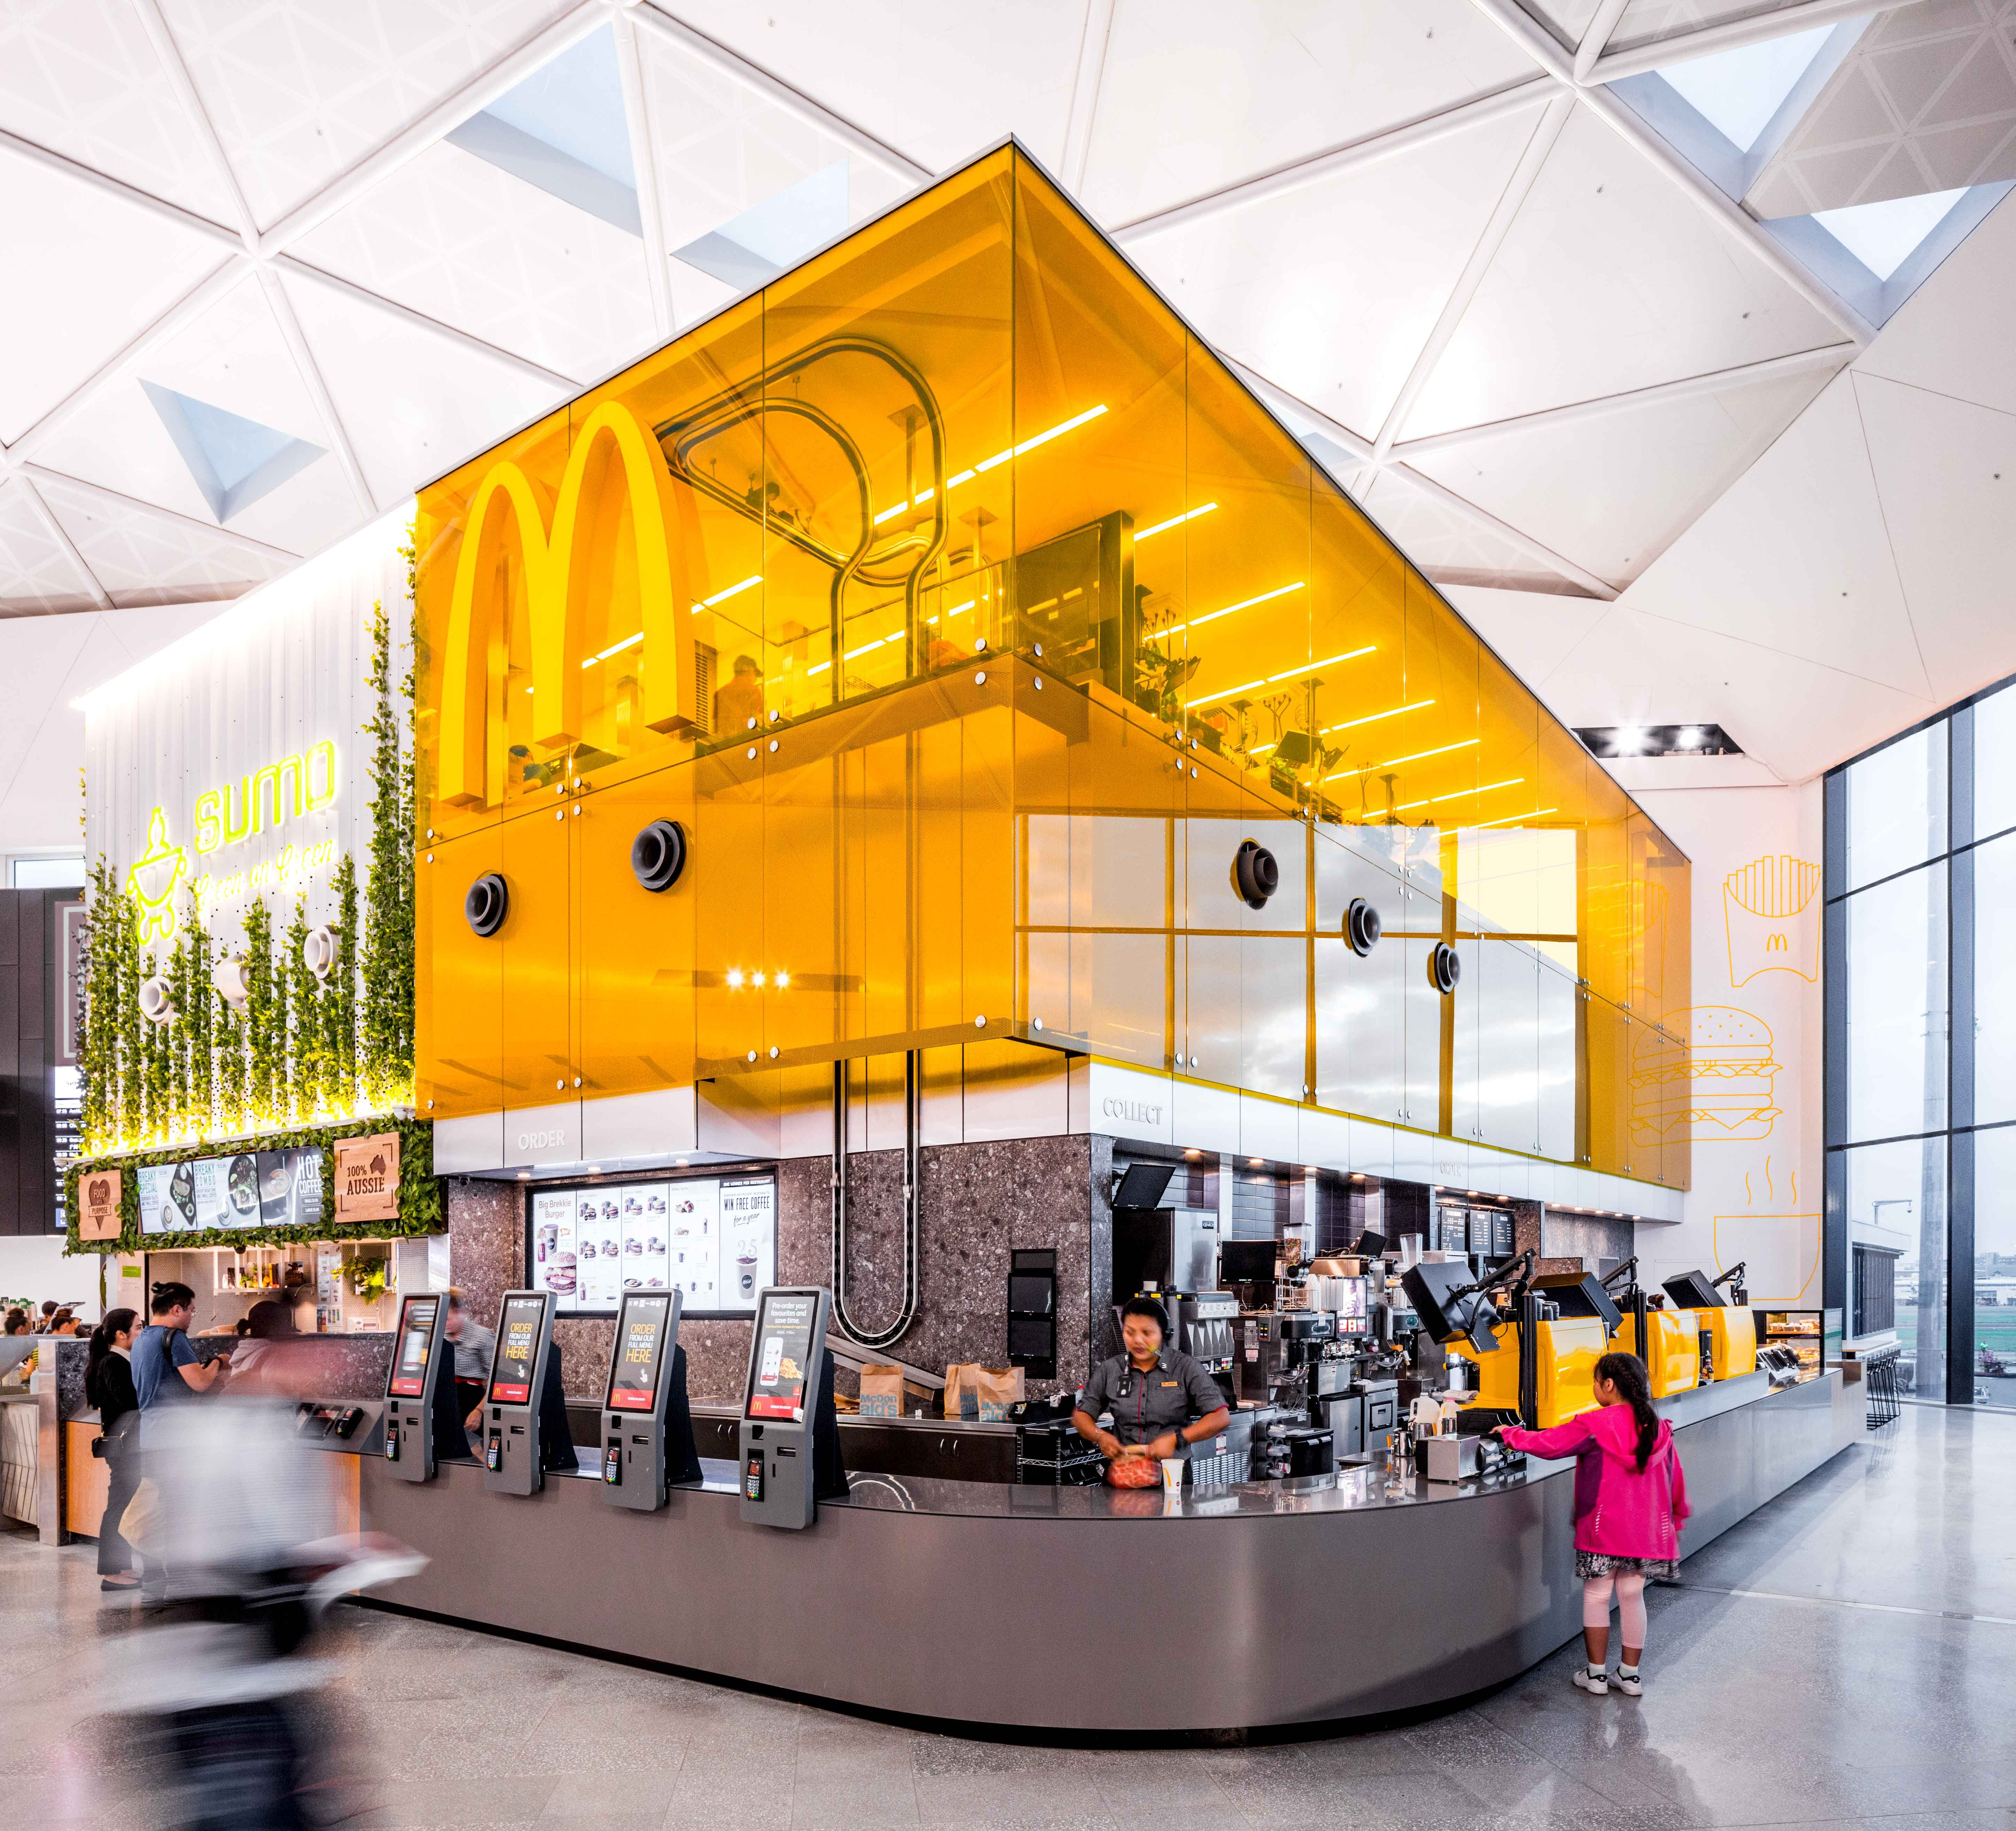 Mcdonald 39 s sydney international airport in 2019 for International decor surfaces